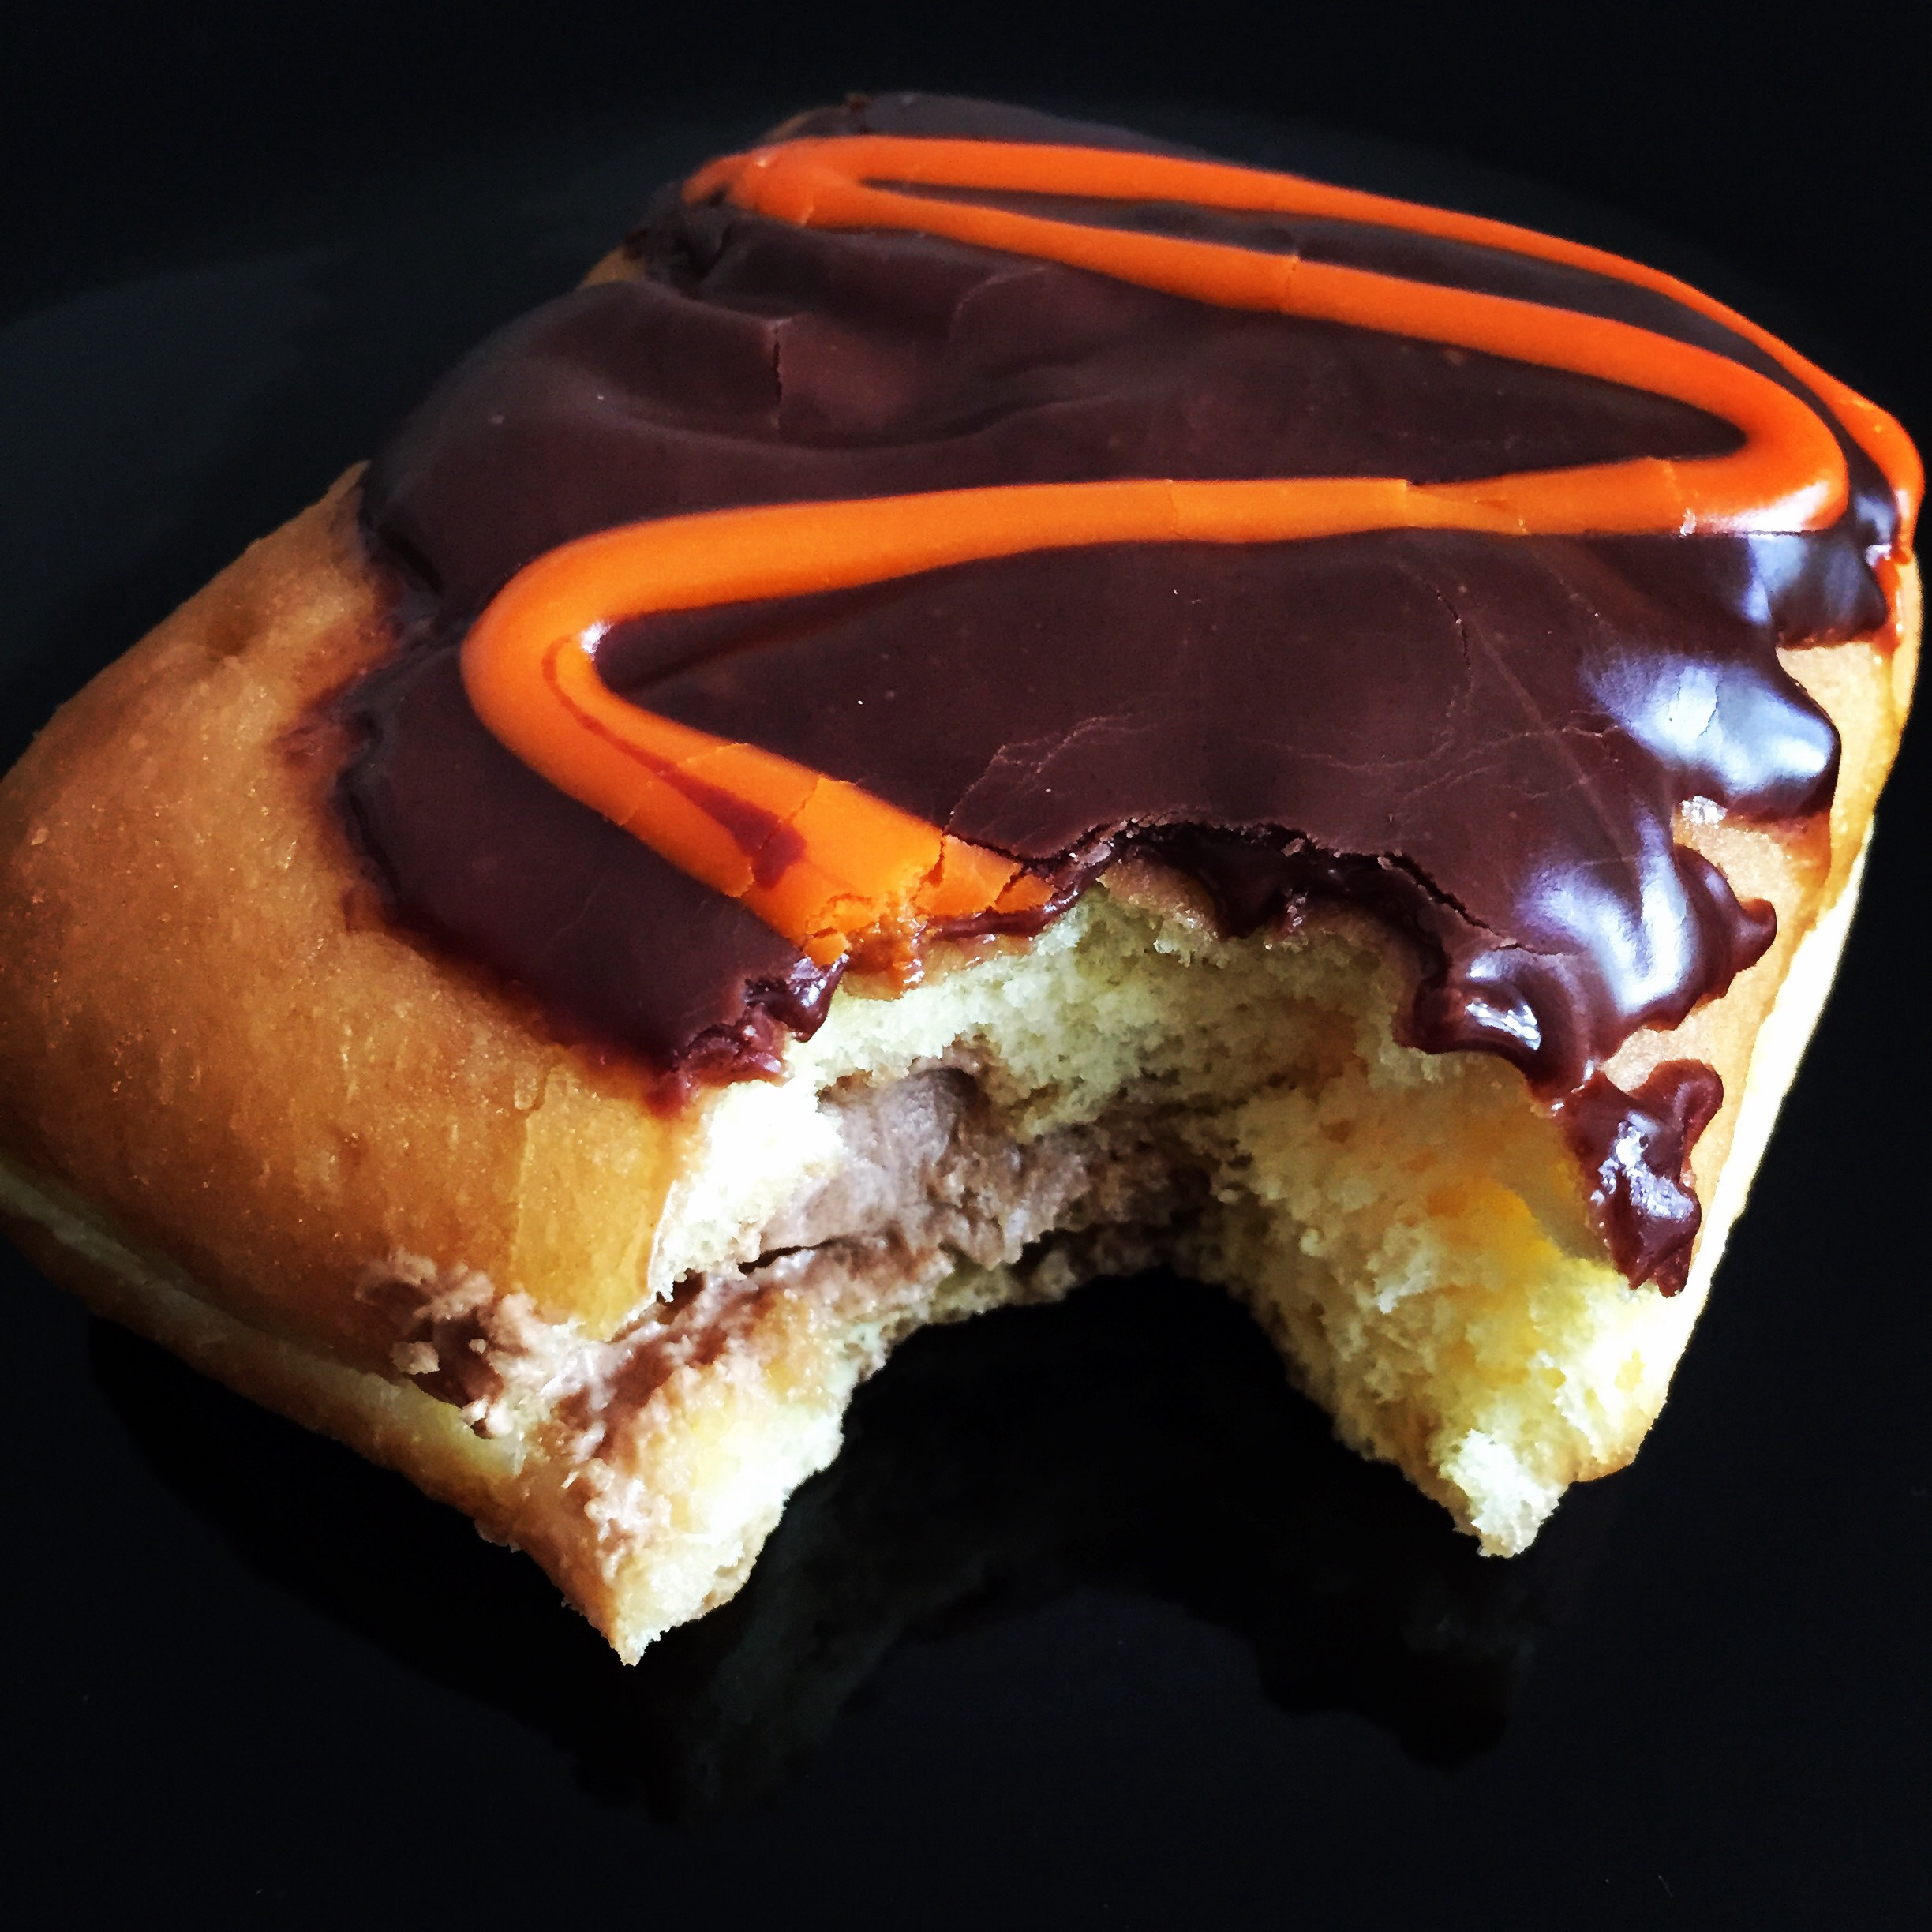 Reese's Peanut Butter Square Donut